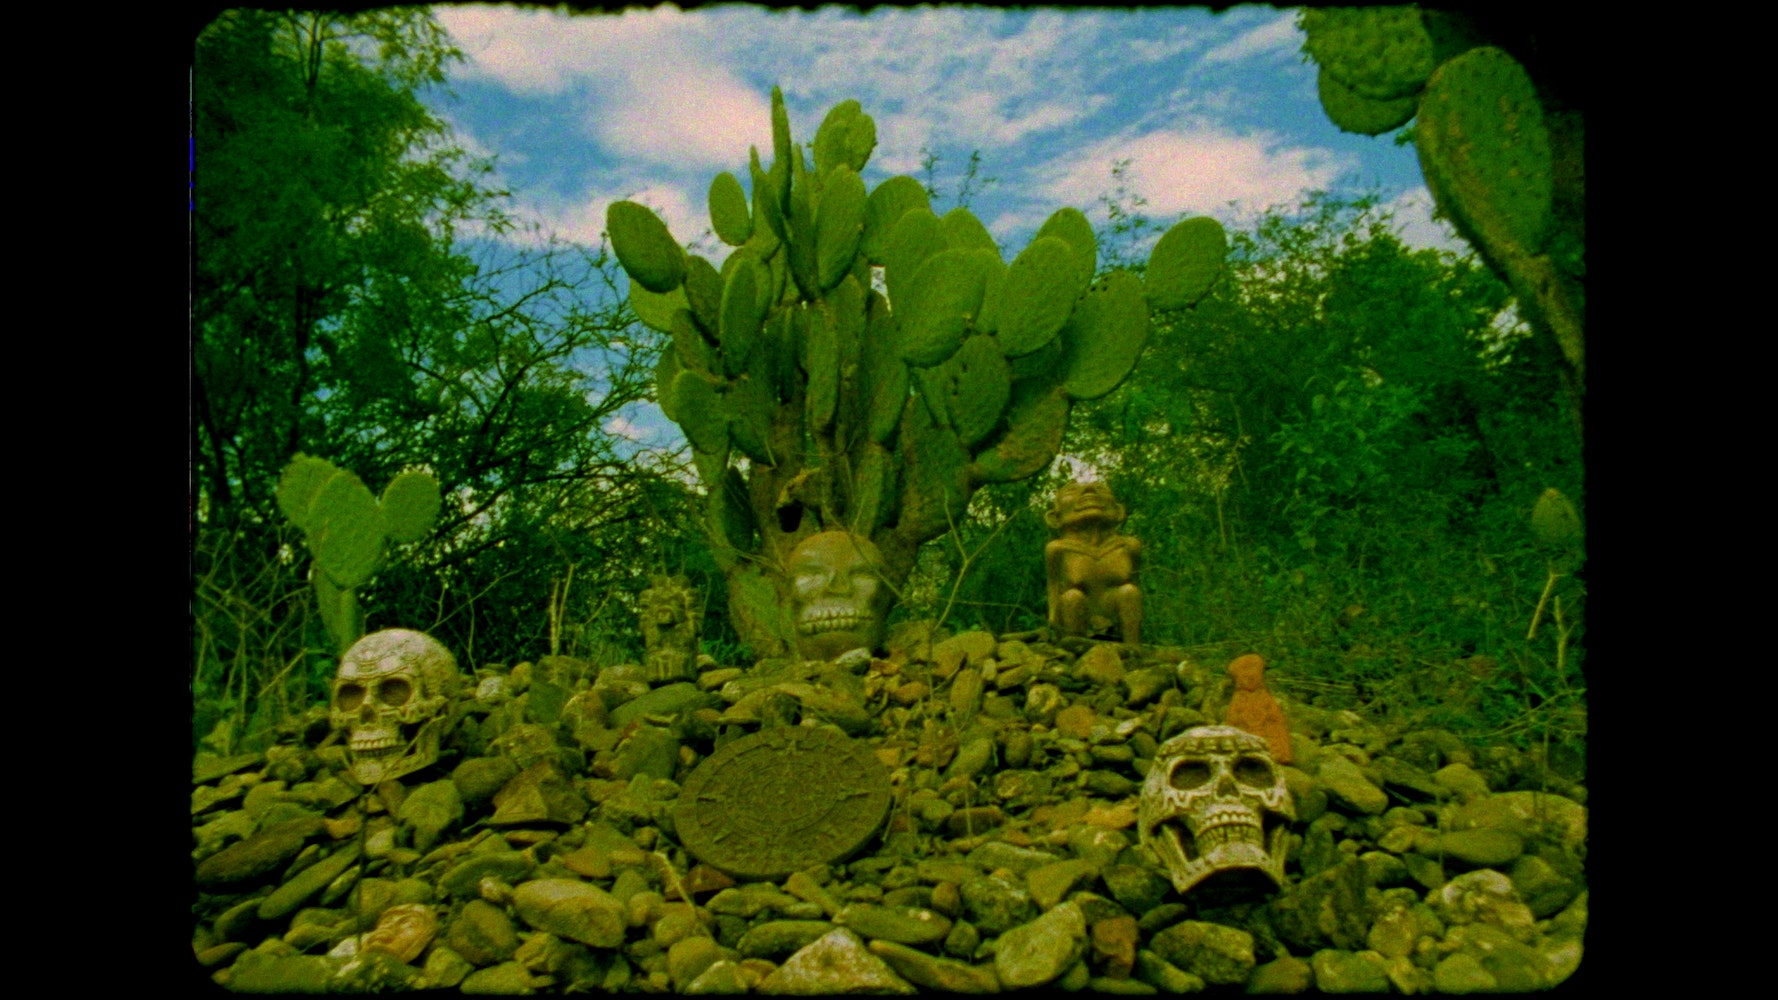 Image of cactus on hill with skulls